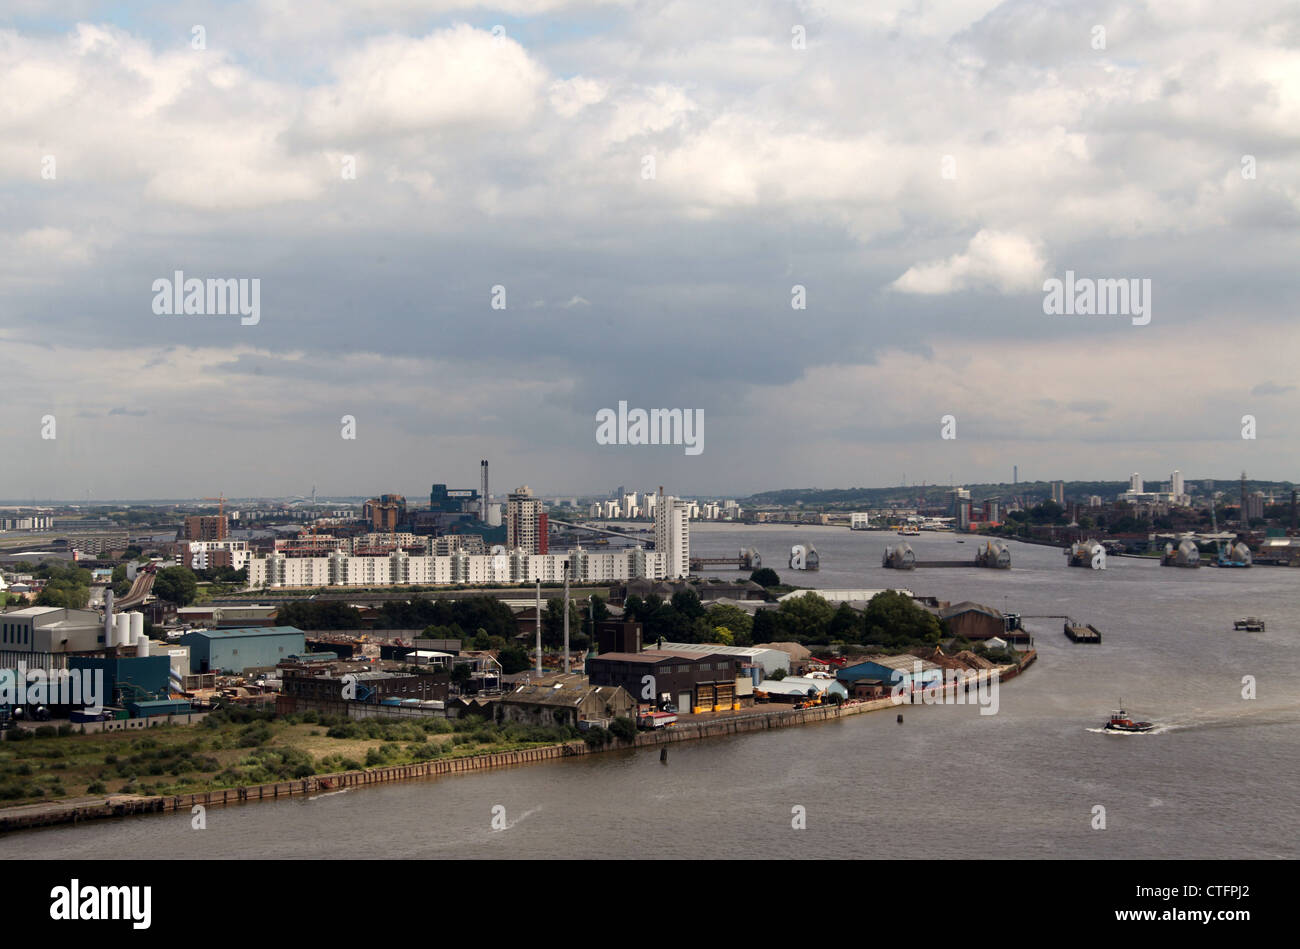 Aerial View of Silvertown and River Thames Flood Control from Emirates Air Line Cable Car - Stock Image